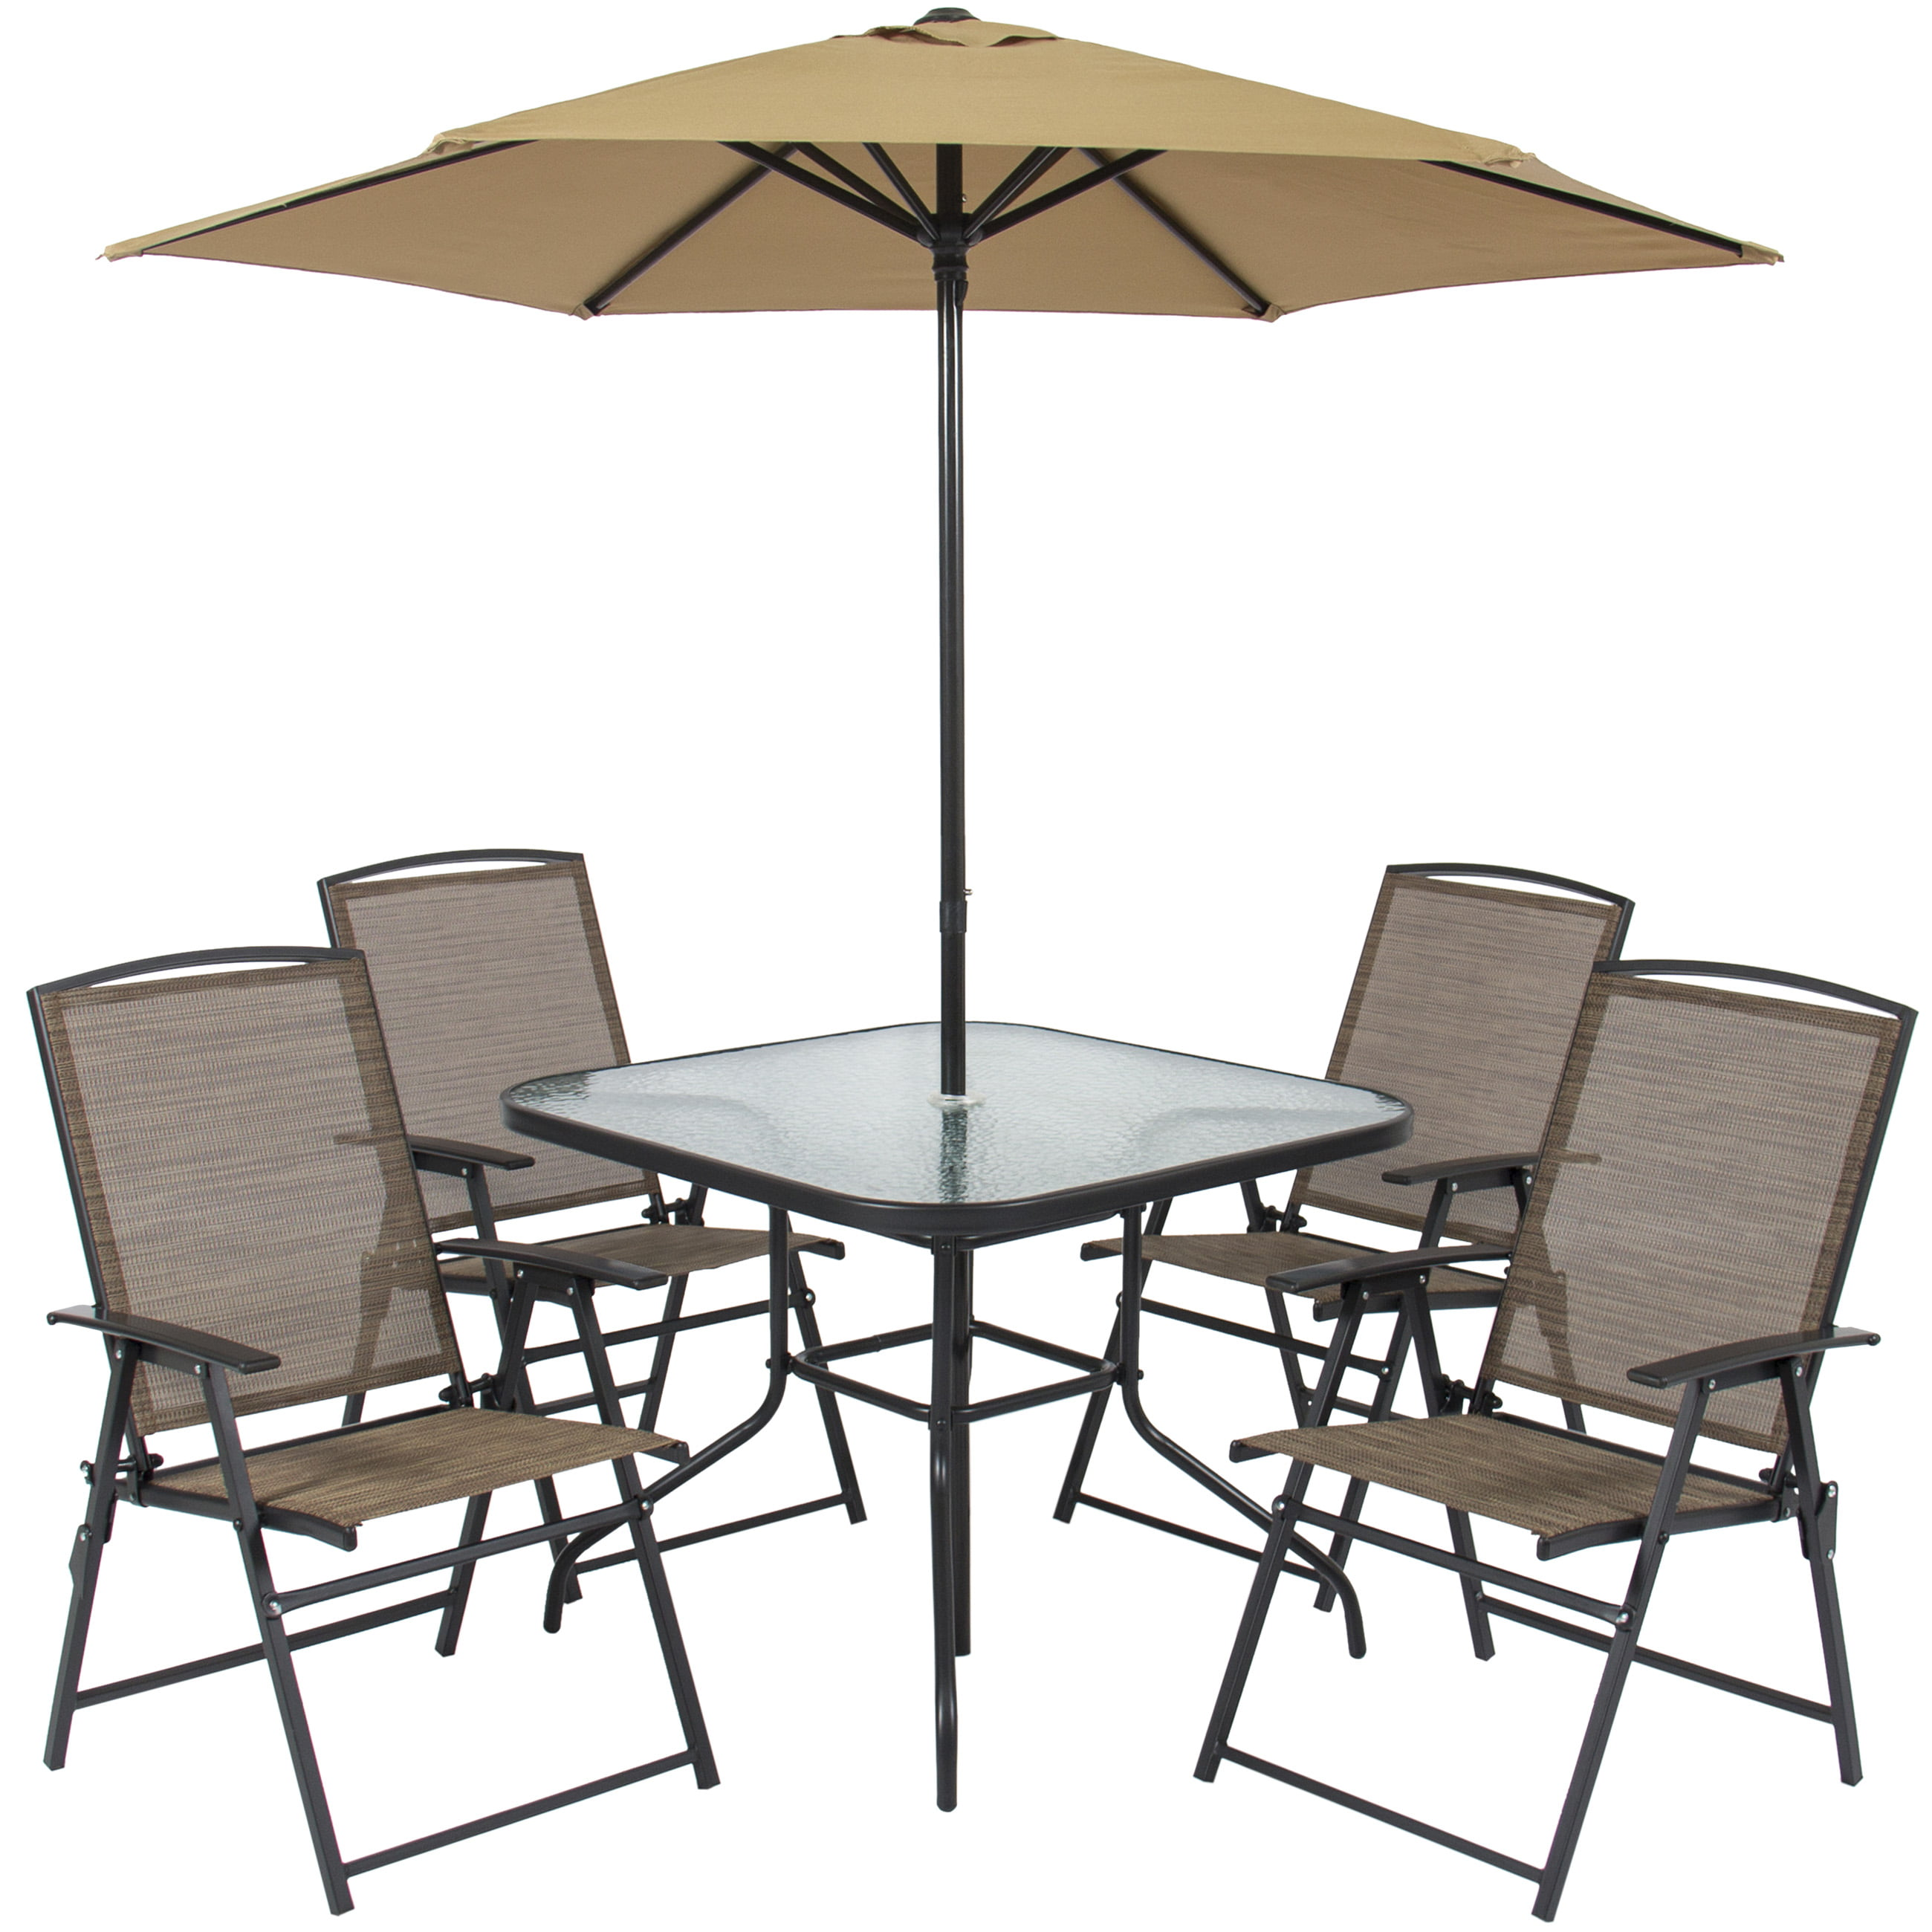 Garden Furniture 6 Chairs best choice products 6pc outdoor folding patio dining set w/ table